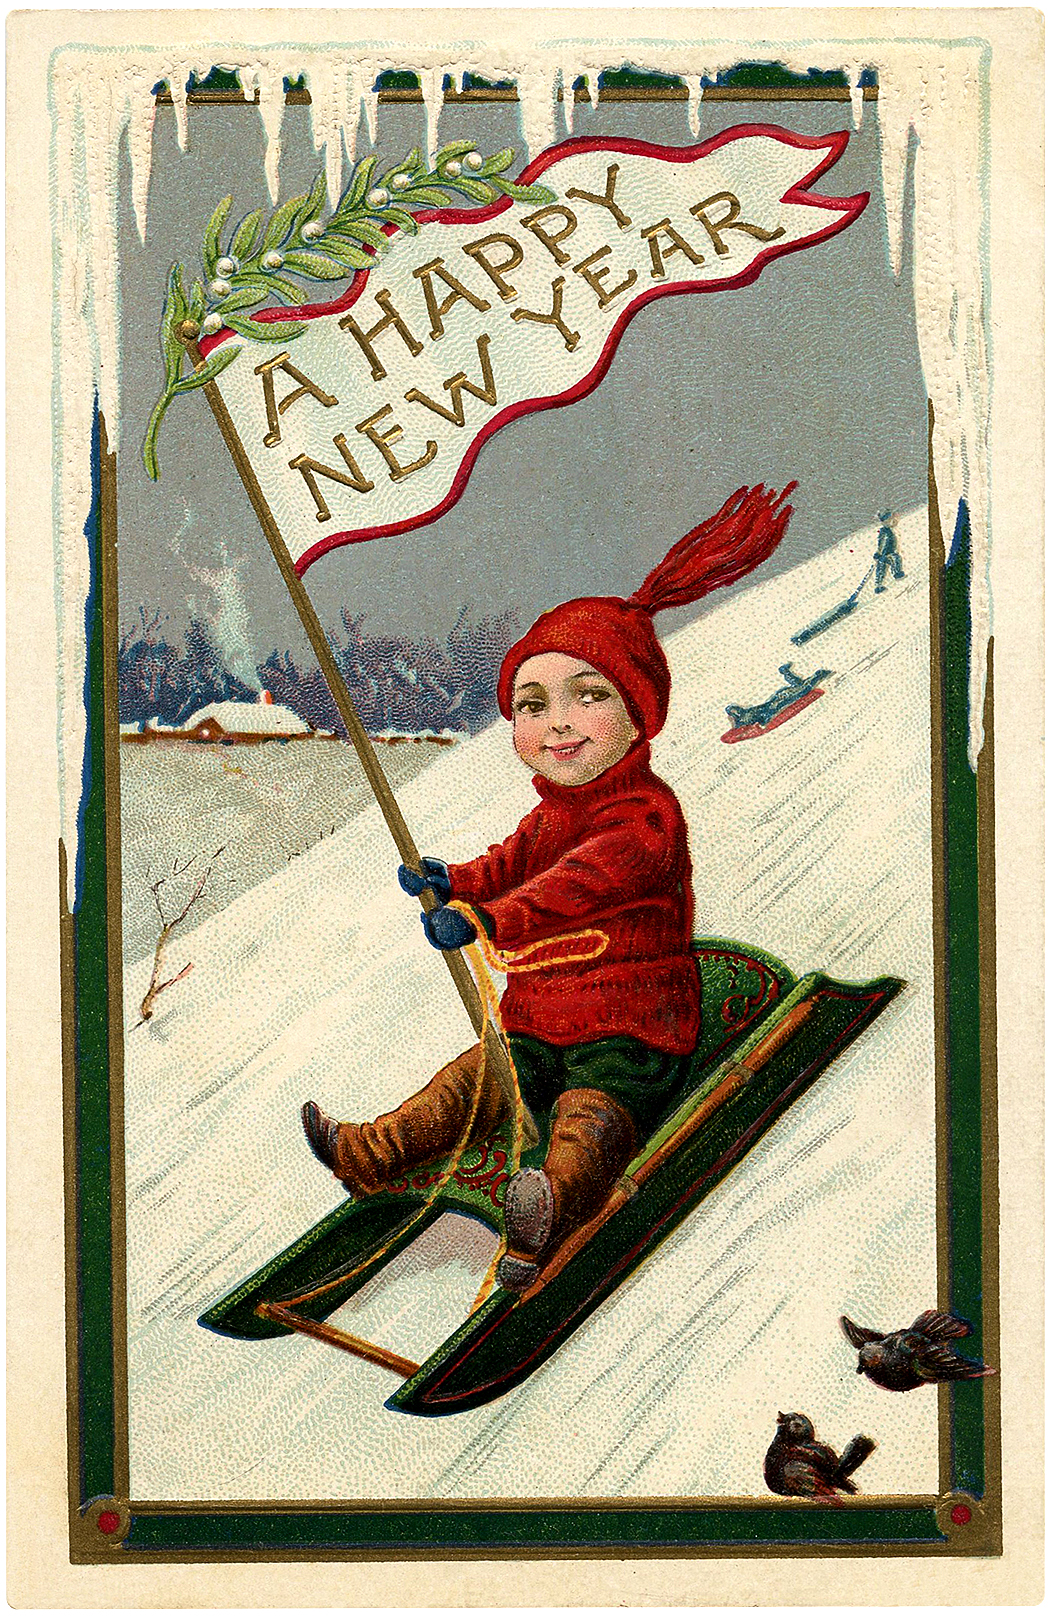 Cute Vintage New Year Sled Boy Image The Graphics Fairy